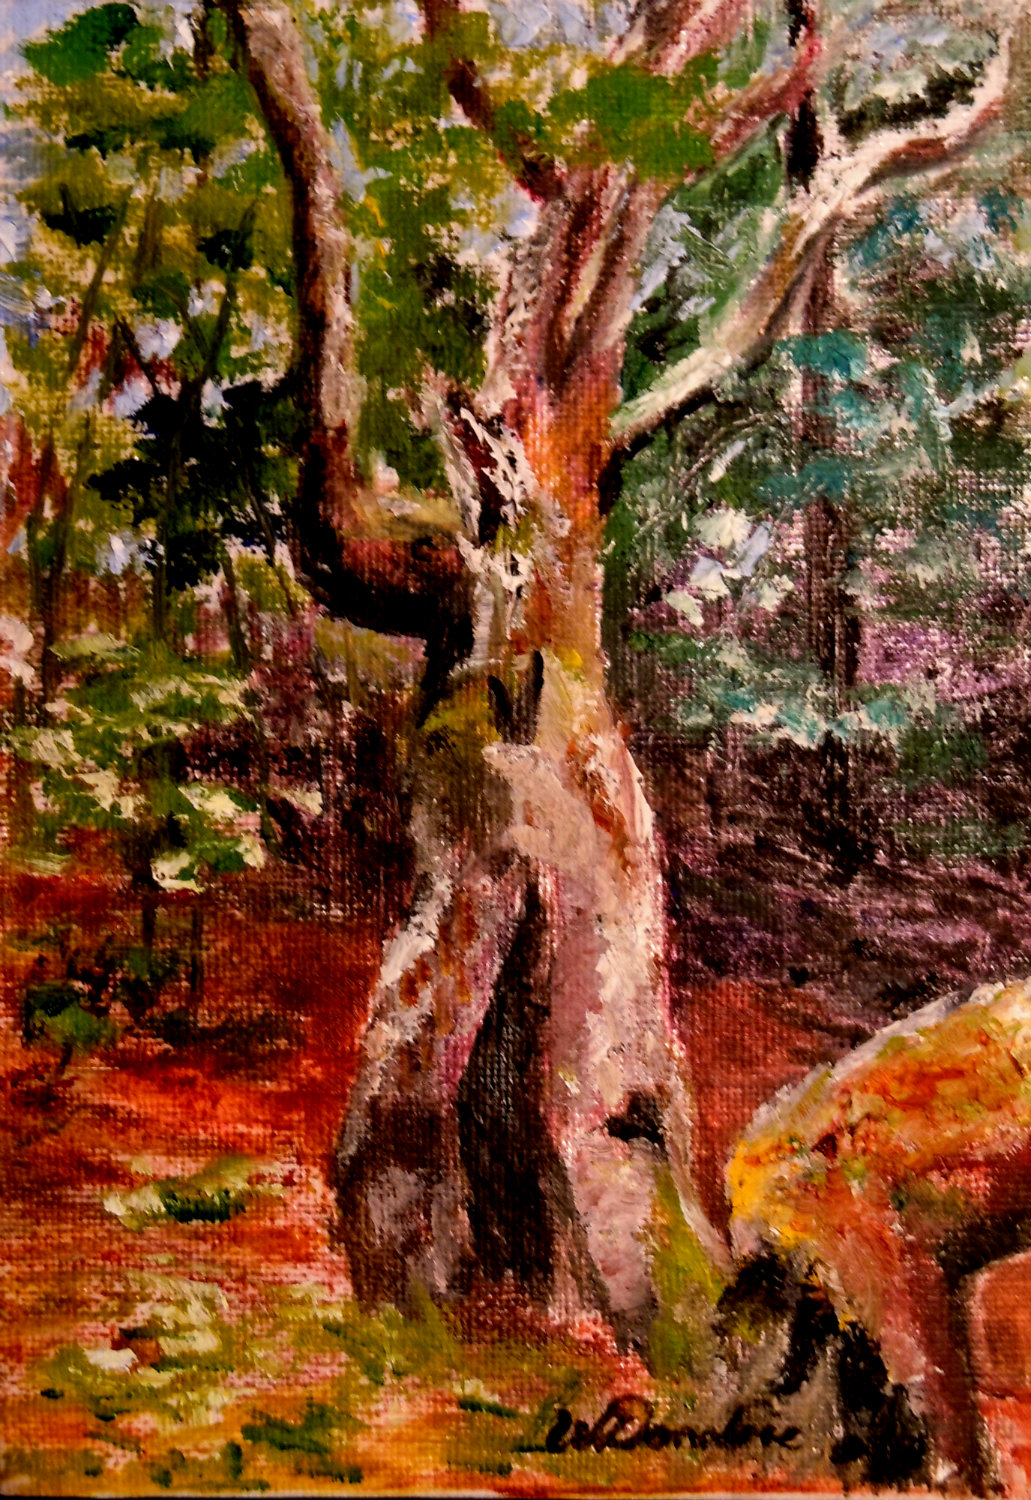 2013-35 Ent of Bracebridge Wood, Oil on canvas board, 7x5 ins, Copyright Wendie Donabie 2013